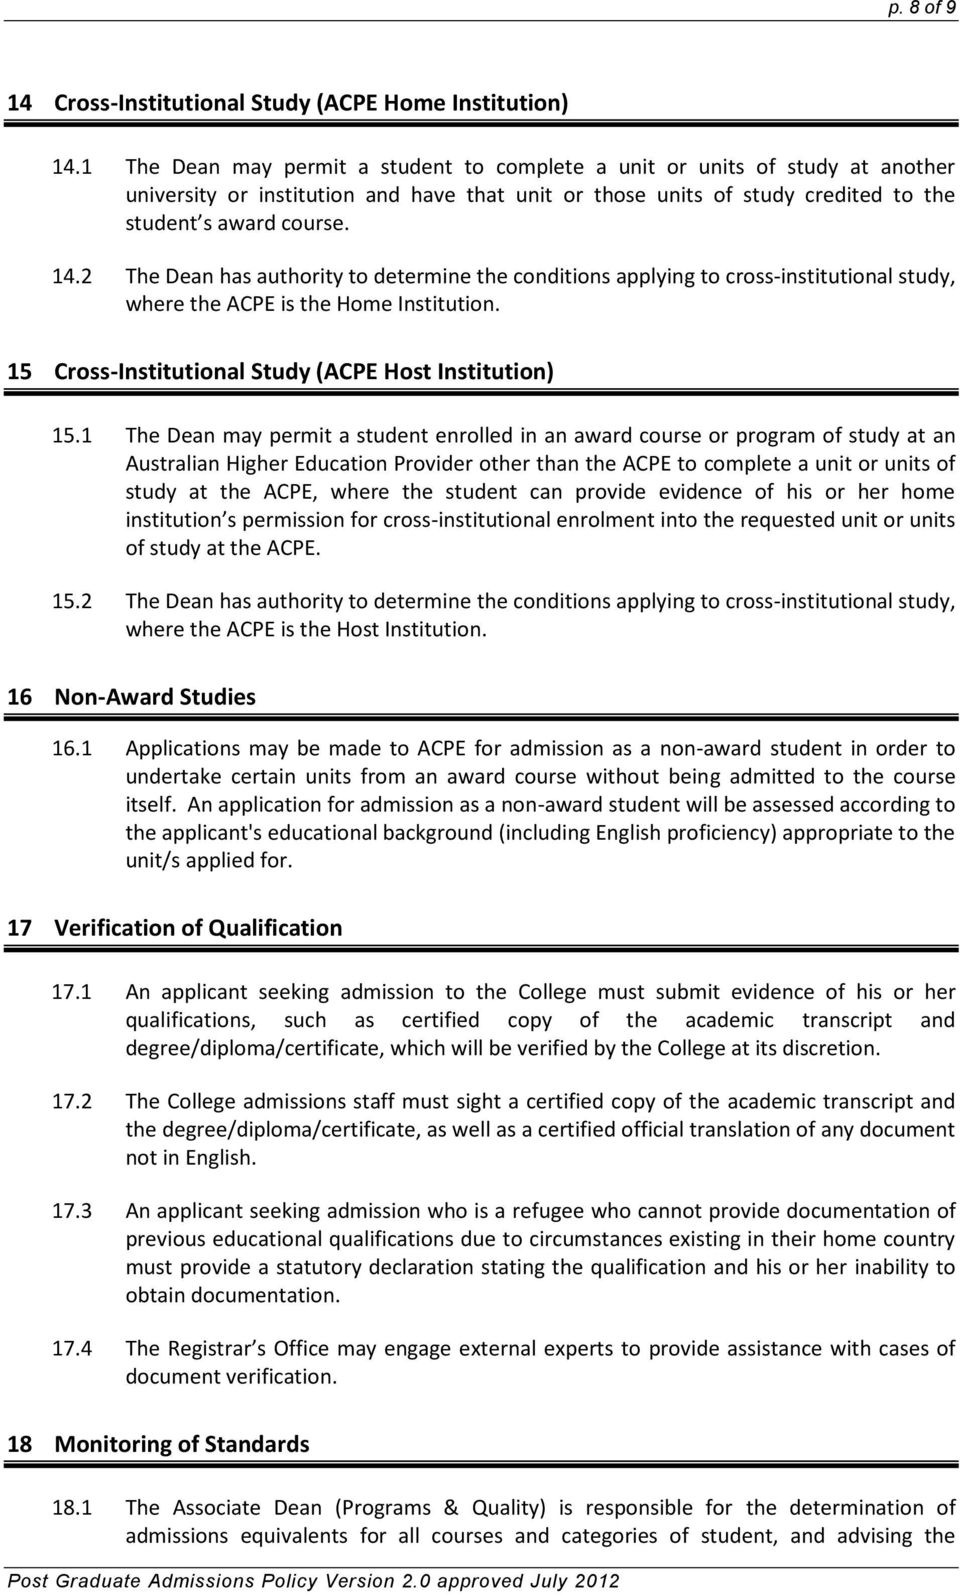 2 The Dean has authority to determine the conditions applying to cross-institutional study, where the ACPE is the Home Institution. 15 Cross-Institutional Study (ACPE Host Institution) 15.